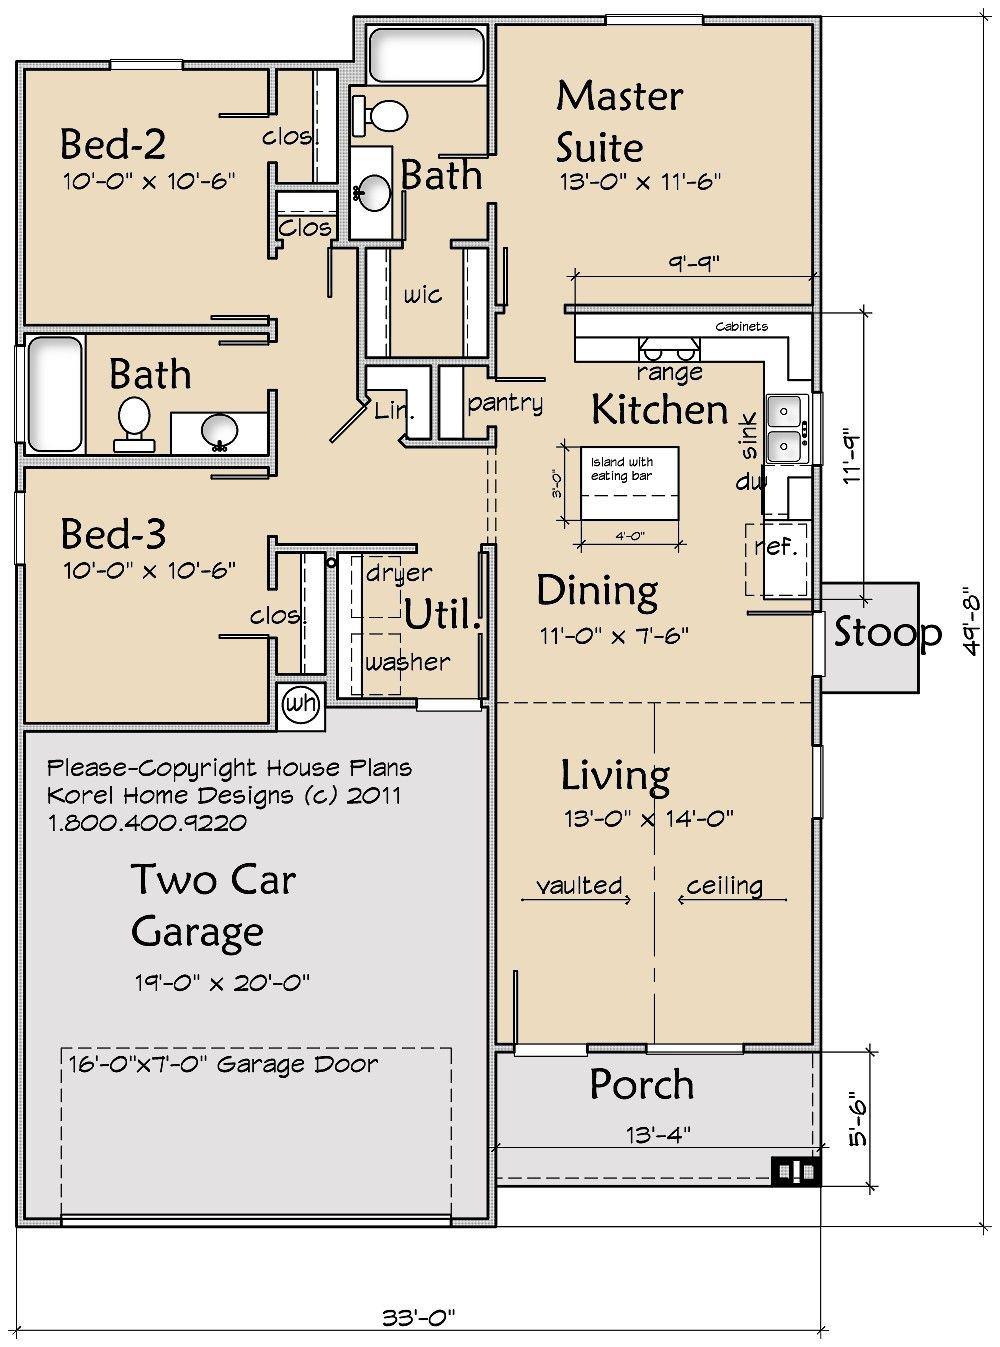 House Plans by Korel Home Designs - not a bad 1 floor plan | For ...